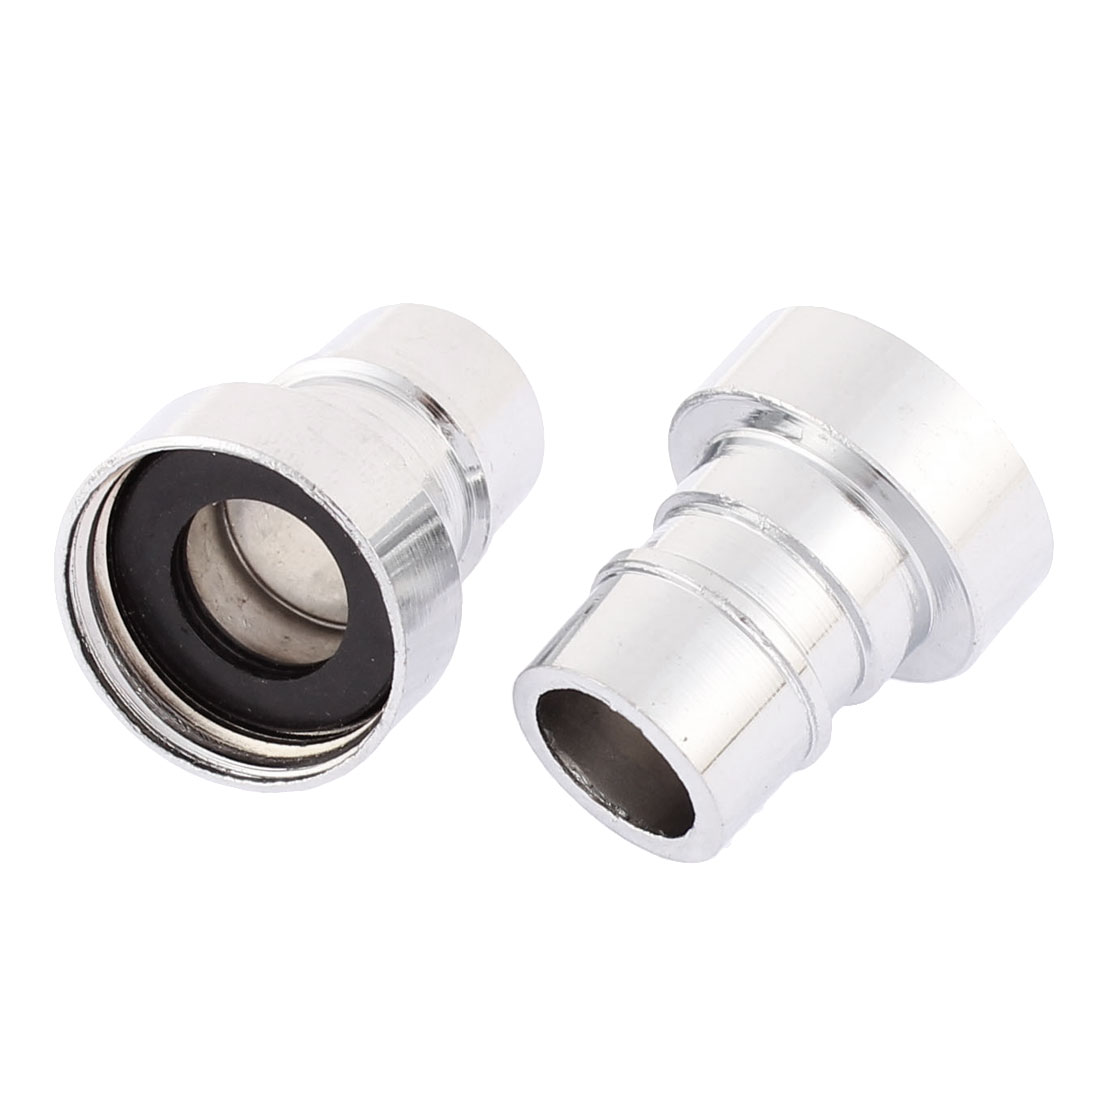 19mm 1/2BSP Female Thread Water Tap Faucet Outlet Nozzle 2pcs